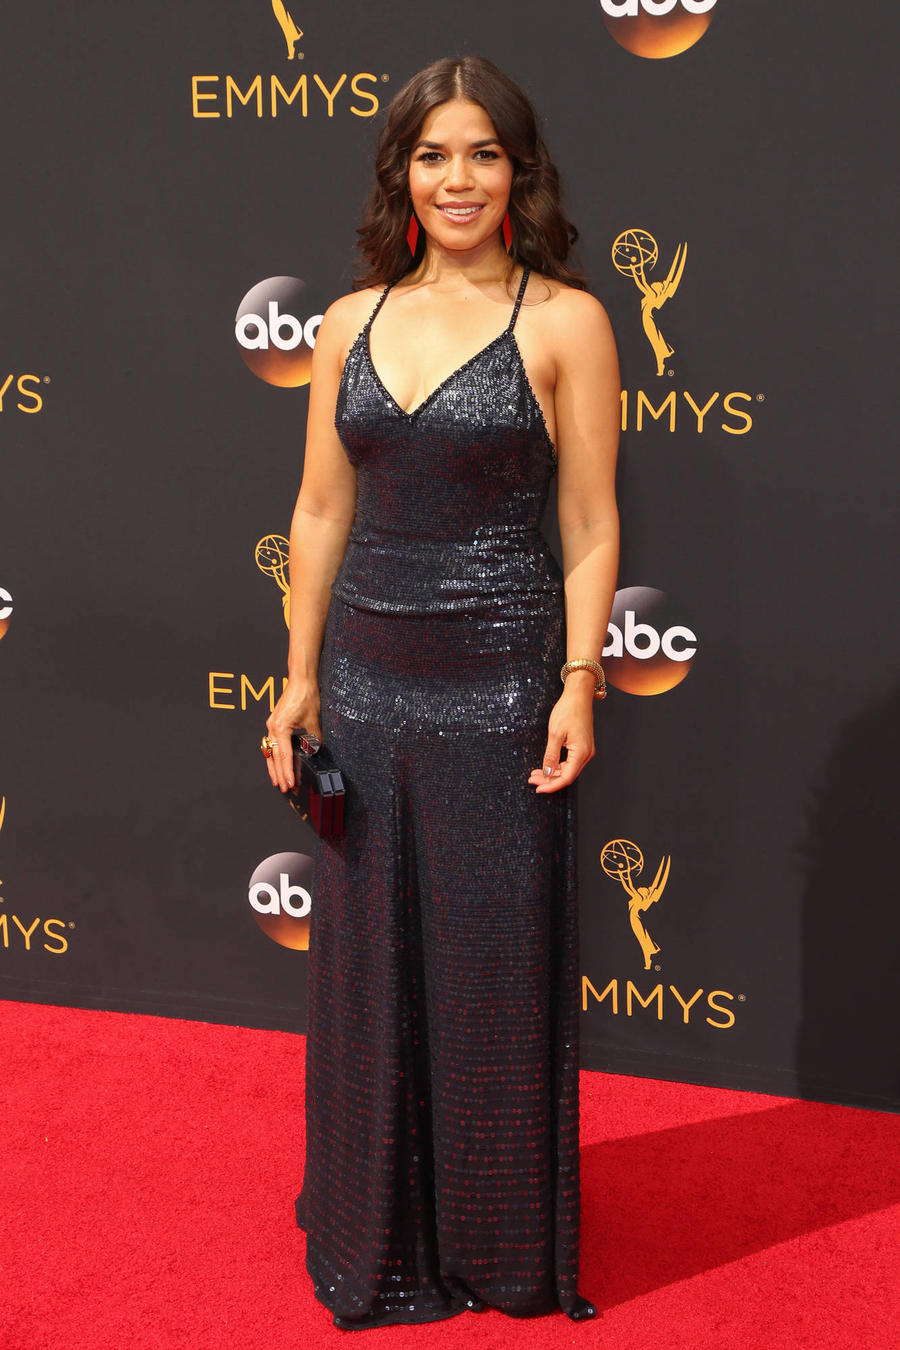 America Ferrera Attends Emmys After First Triathlon